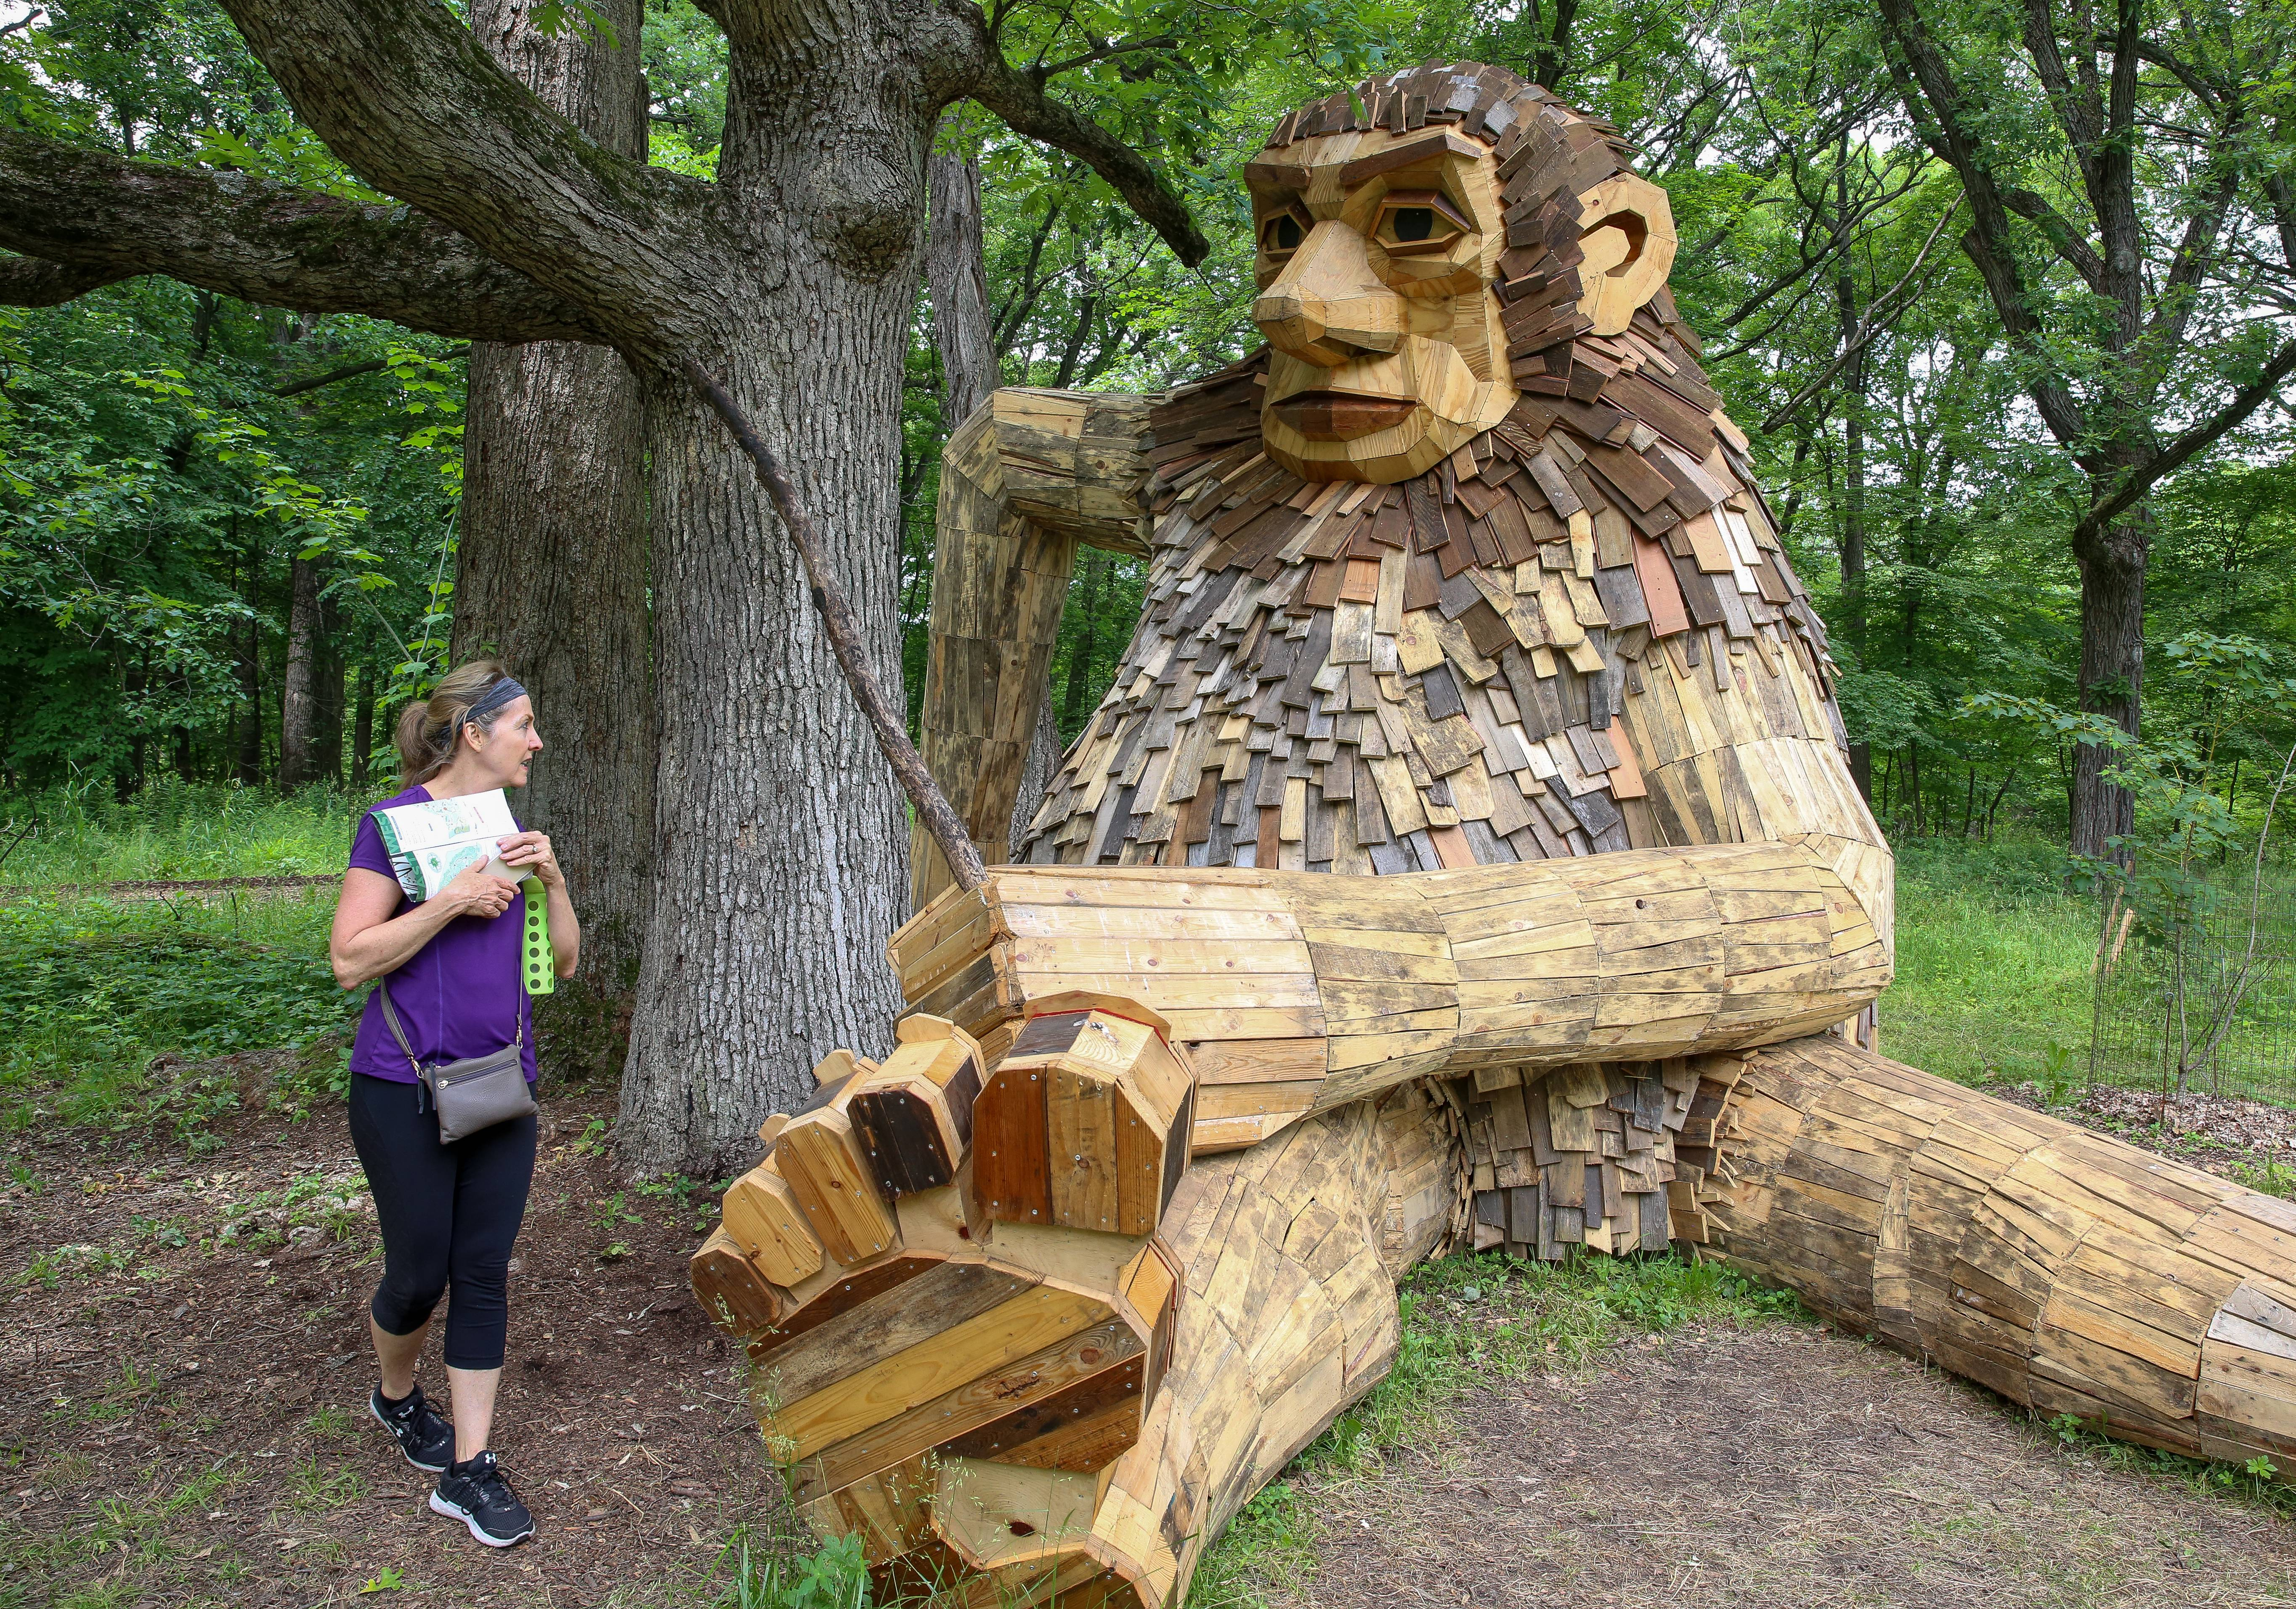 "The ""Troll Hunt"" exhibit by Danish artist Thomas Dambo opens Friday at the Morton Arboretum in Lisle with the official unveiling of six giant wooden sculptures. ""The craftsmanship is extraordinary,"" said Pam Titzer, an arboretum visitor from La Grange."